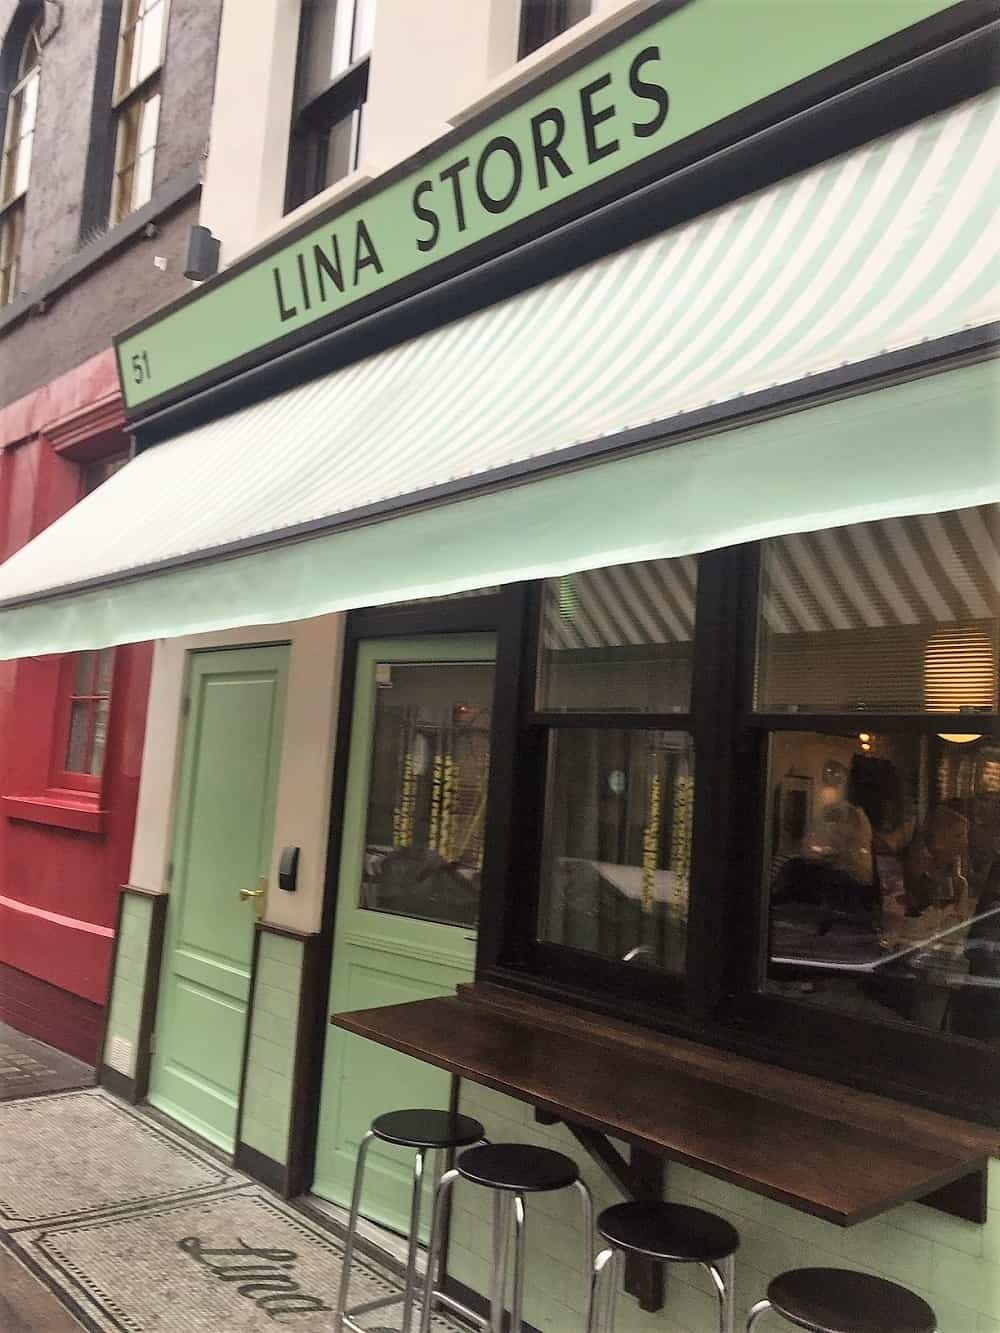 Lina Stores restaurant on Greek Street